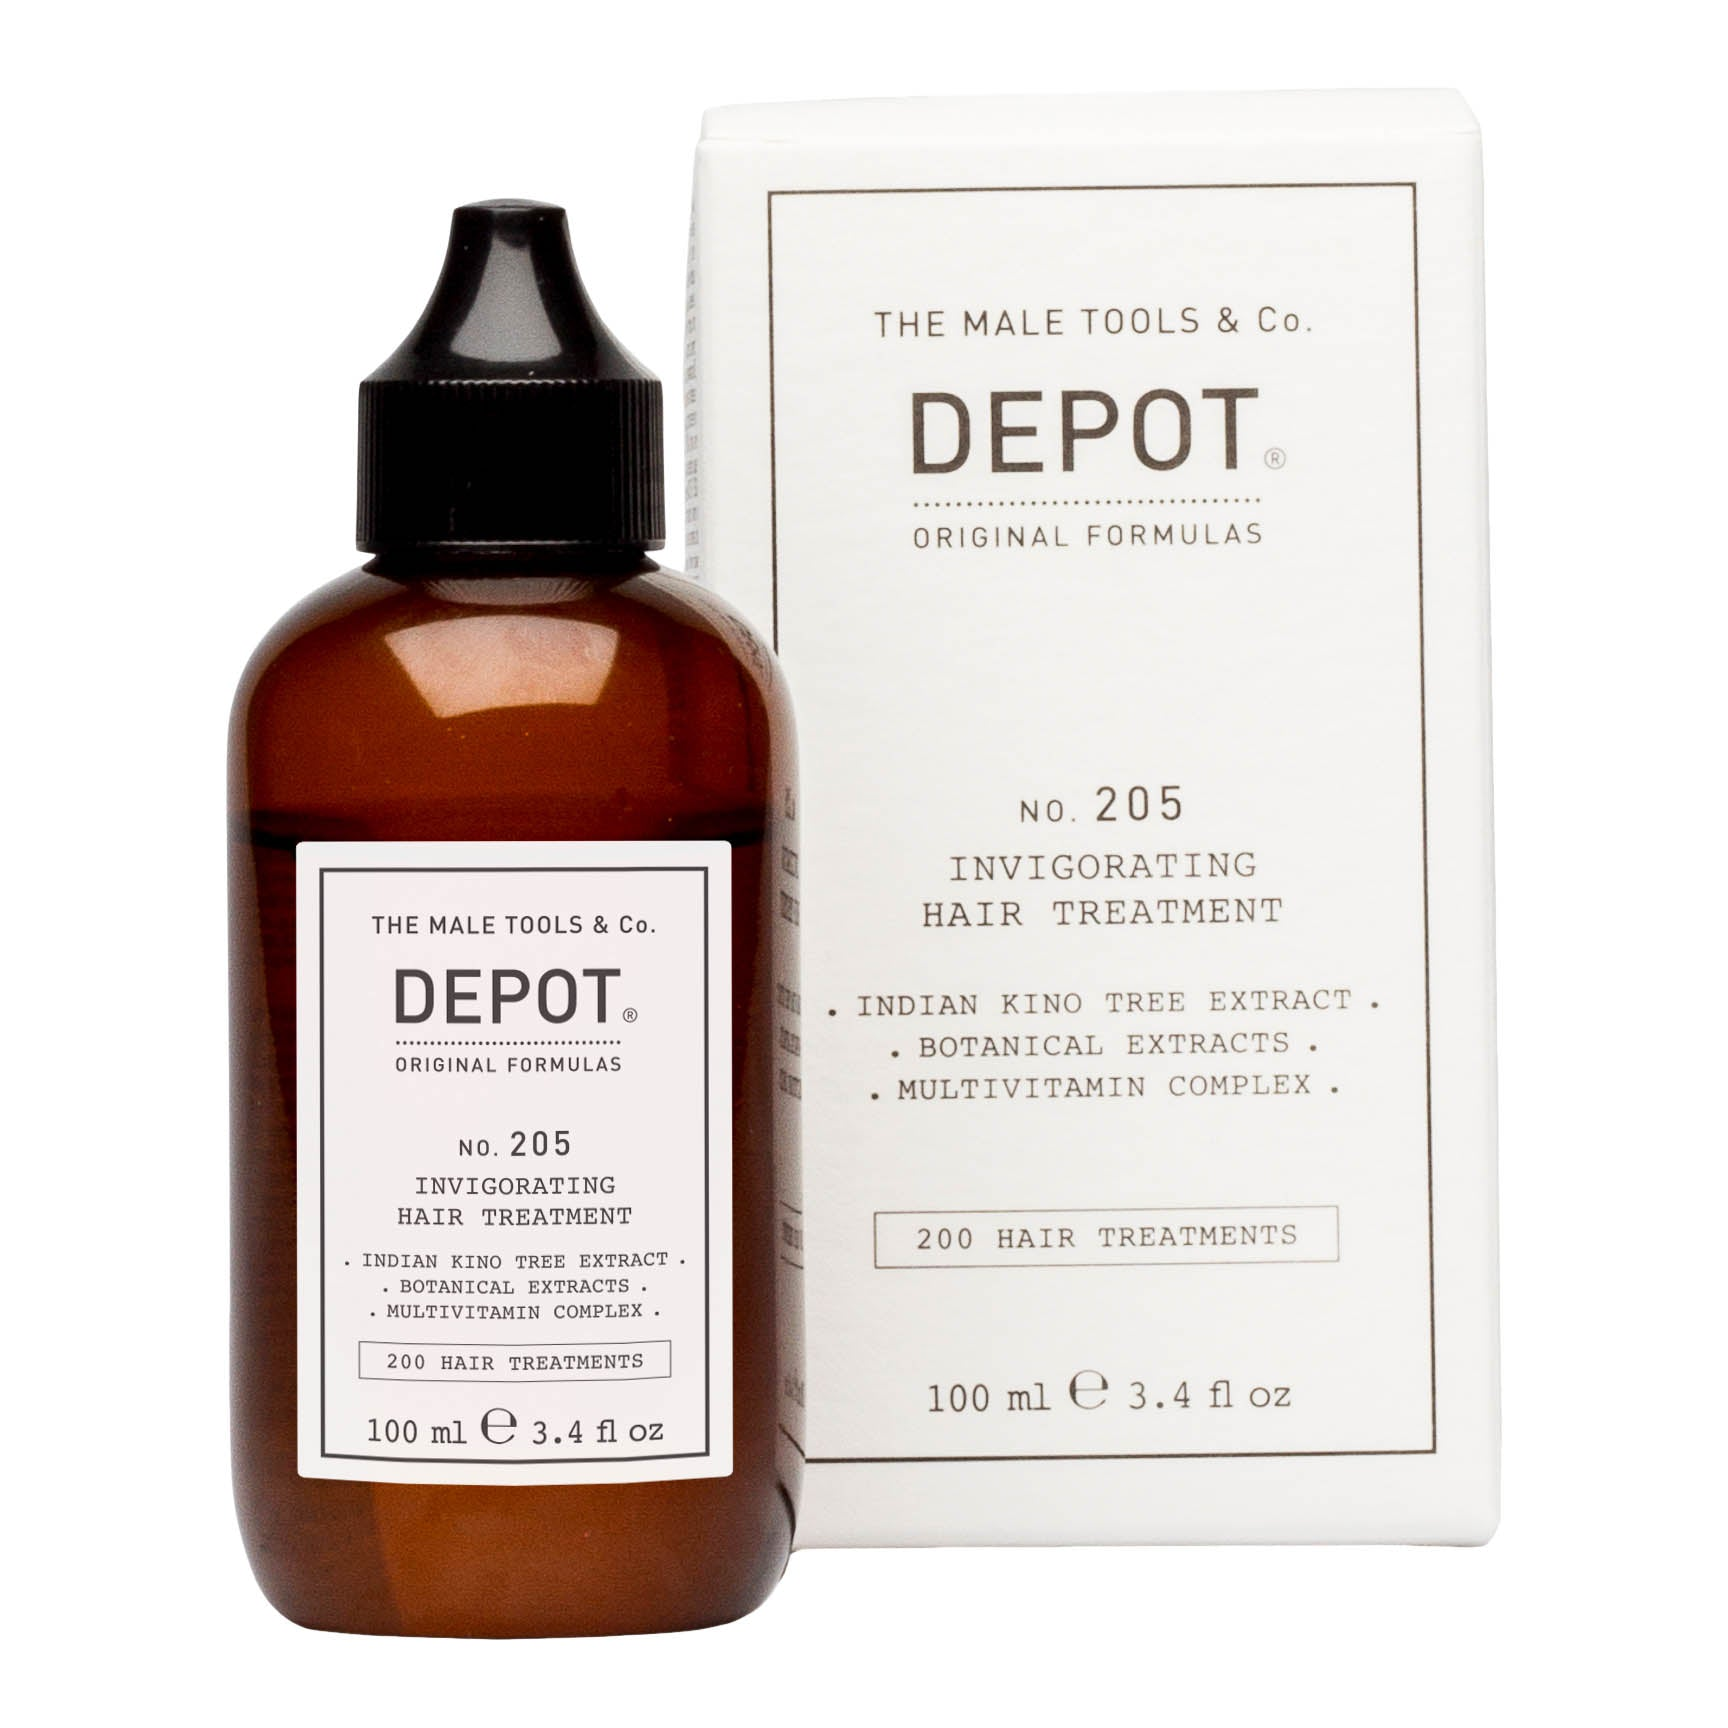 Depot No. 205 Invigorating Hair Treatment